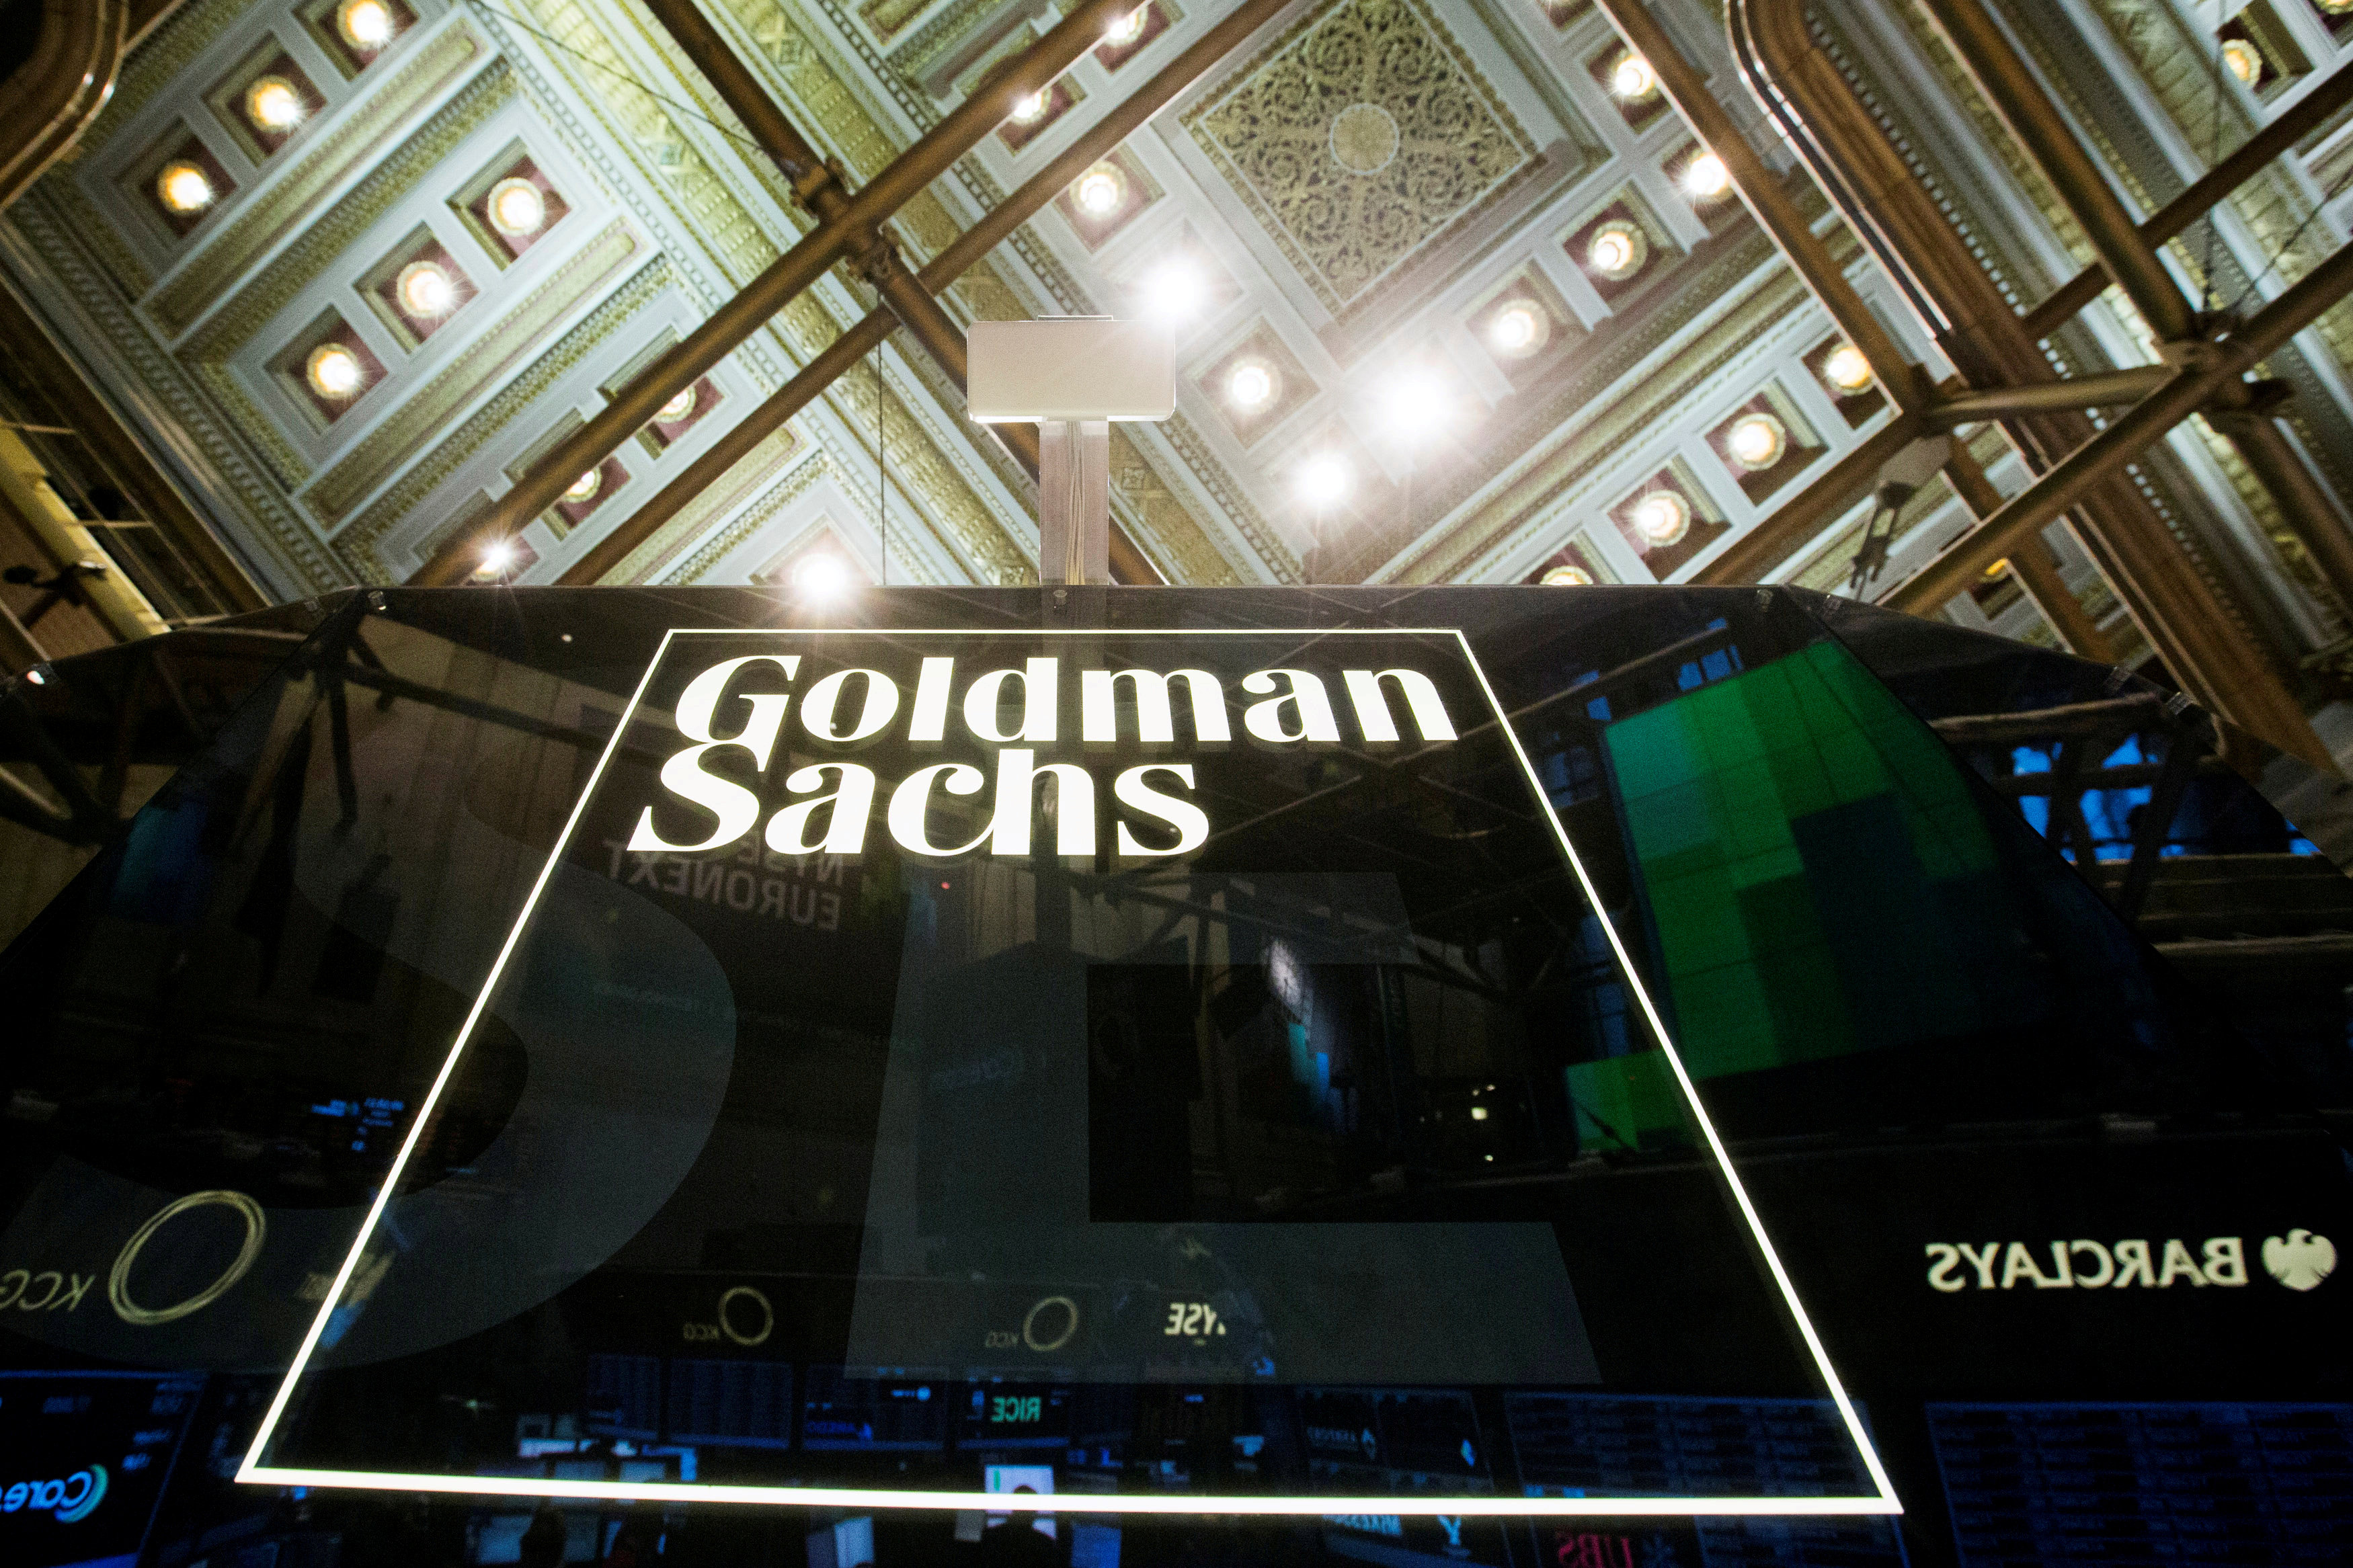 A Goldman Sachs sign is seen above the floor of the New York Stock Exchange shortly after the opening bell in the Manhattan borough of New York, U.S